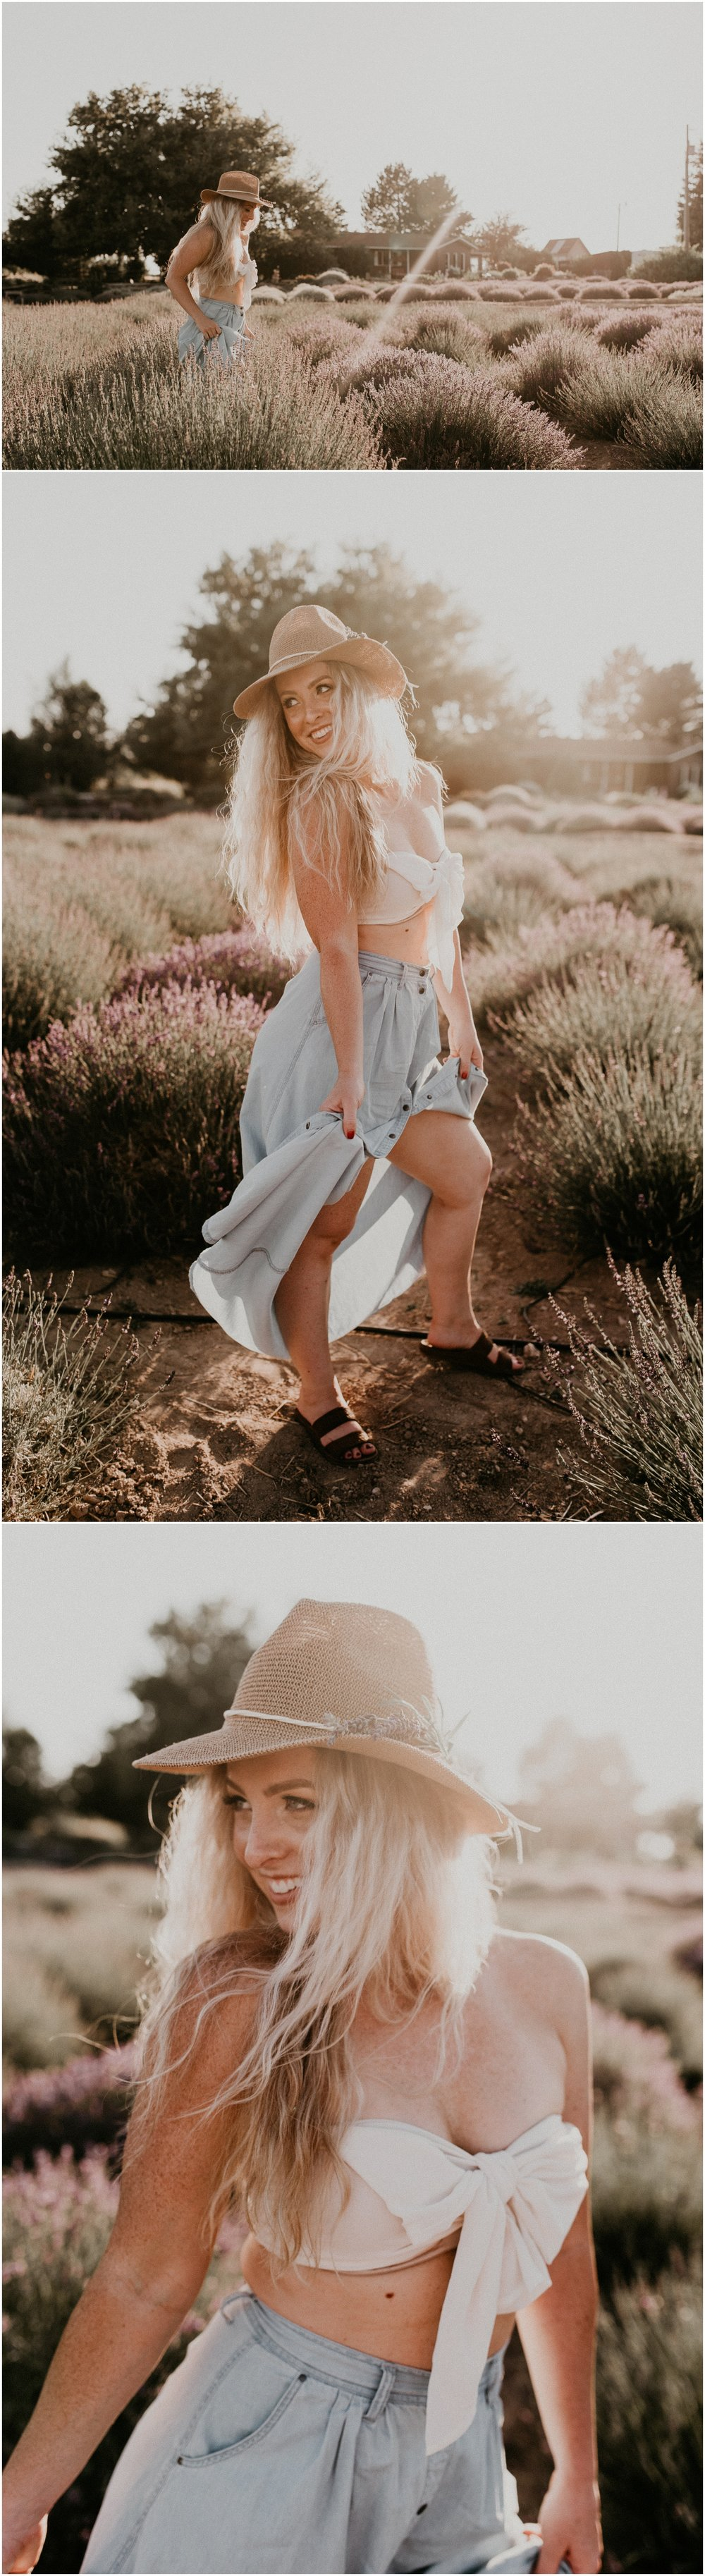 Makayla Madden Photography Boise Idaho Senior Boudoir Wedding Photographer Kuna Idaho Lavender Field Merchant Portrait Session Dreamy Golden Hour